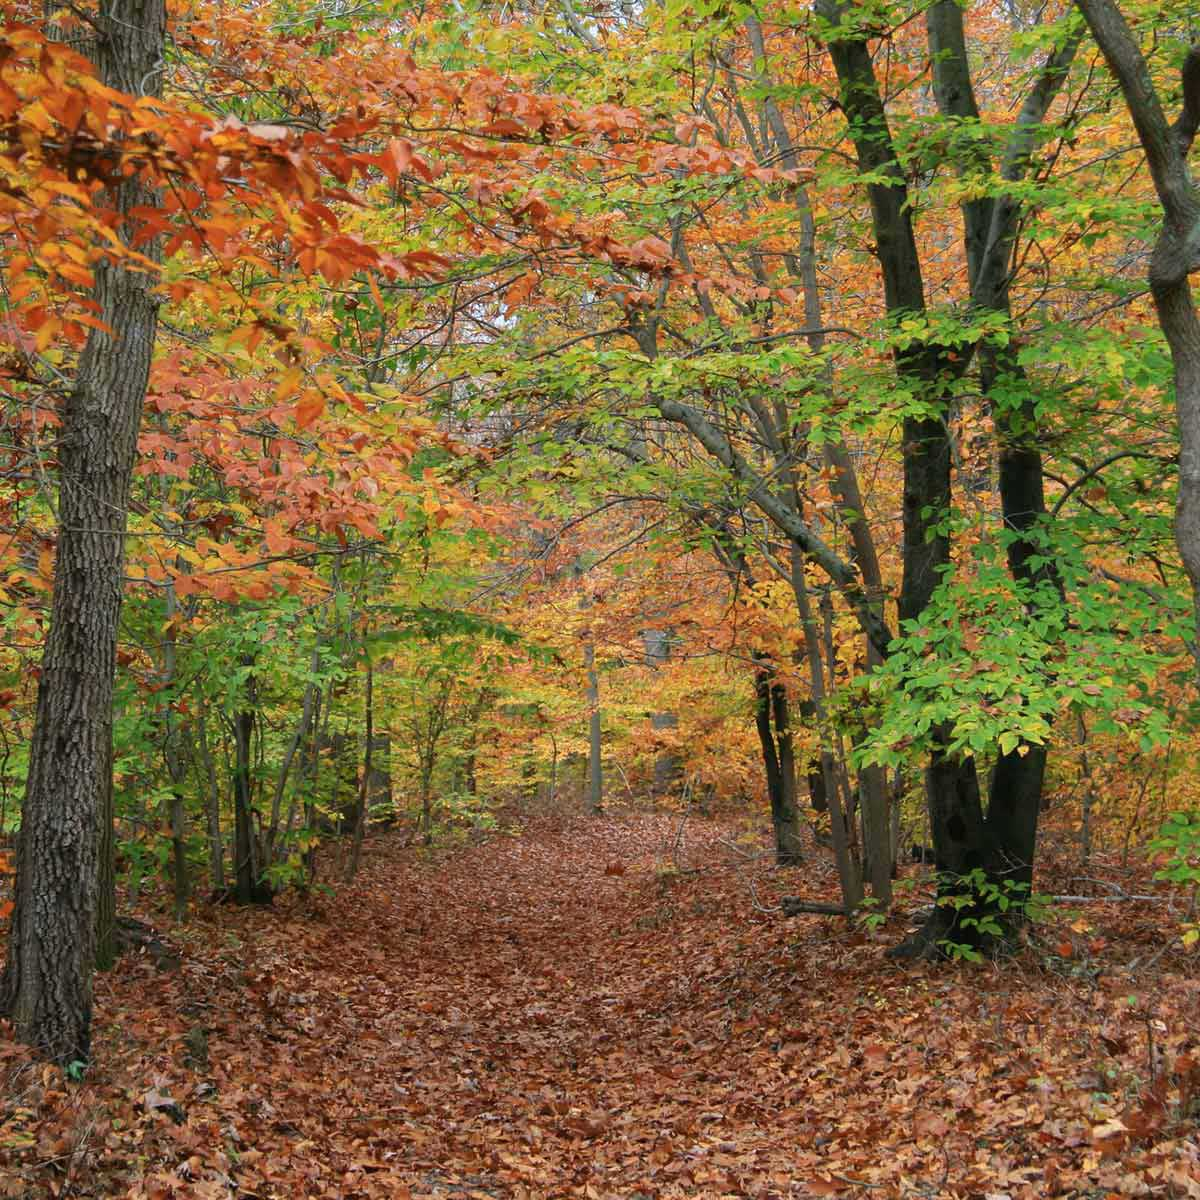 There is excellent hiking at Rancocas State Park near Mount Laurel, NJ.